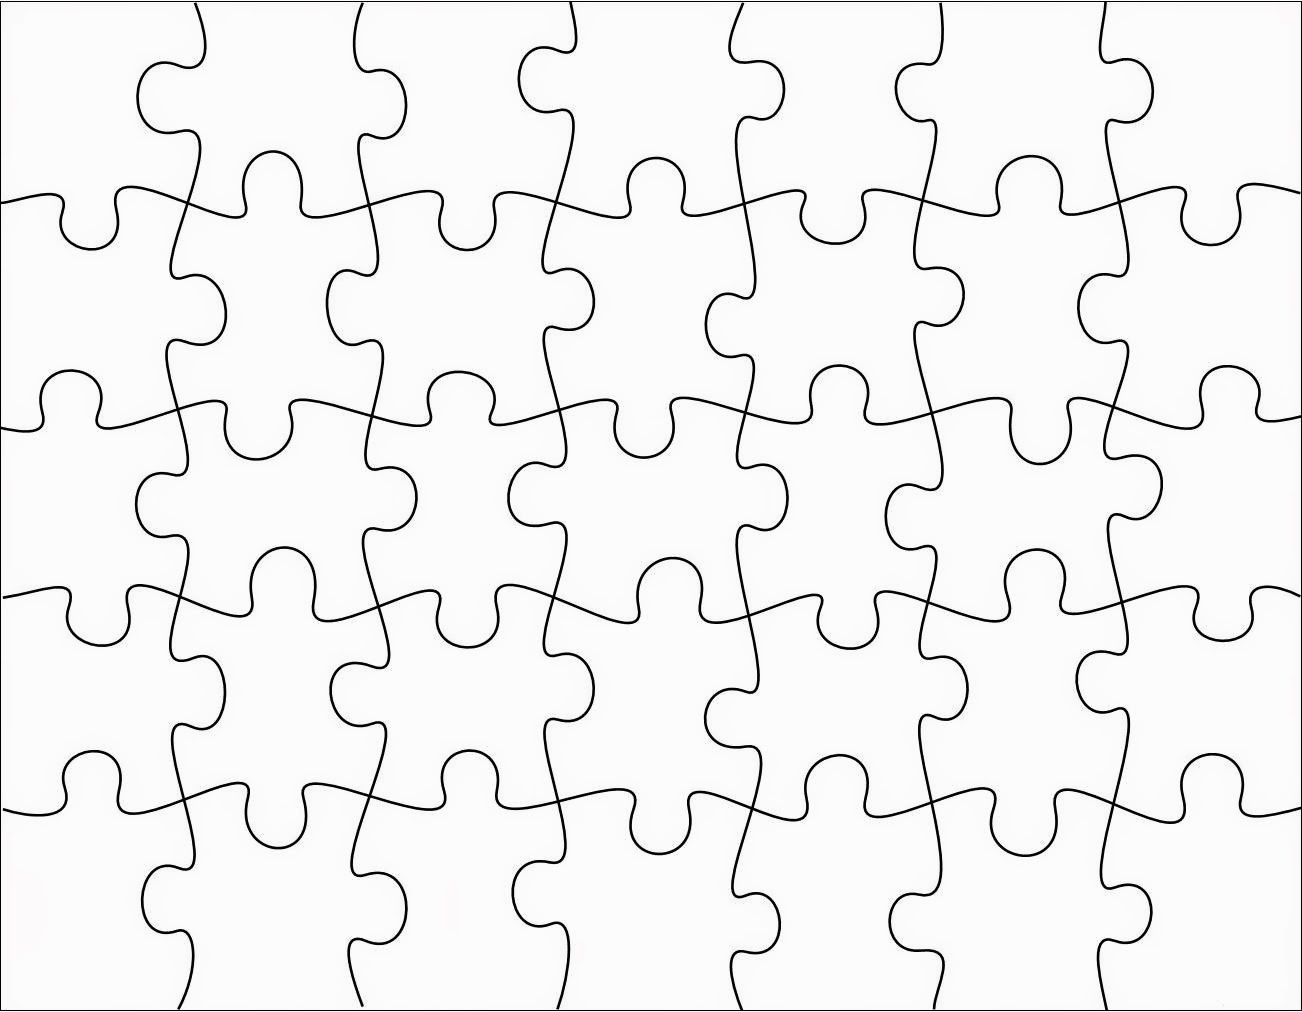 Free Puzzle Piece Template, Download Free Clip Art, Free Clip Art On - Free Printable Blank Jigsaw Puzzle Pieces